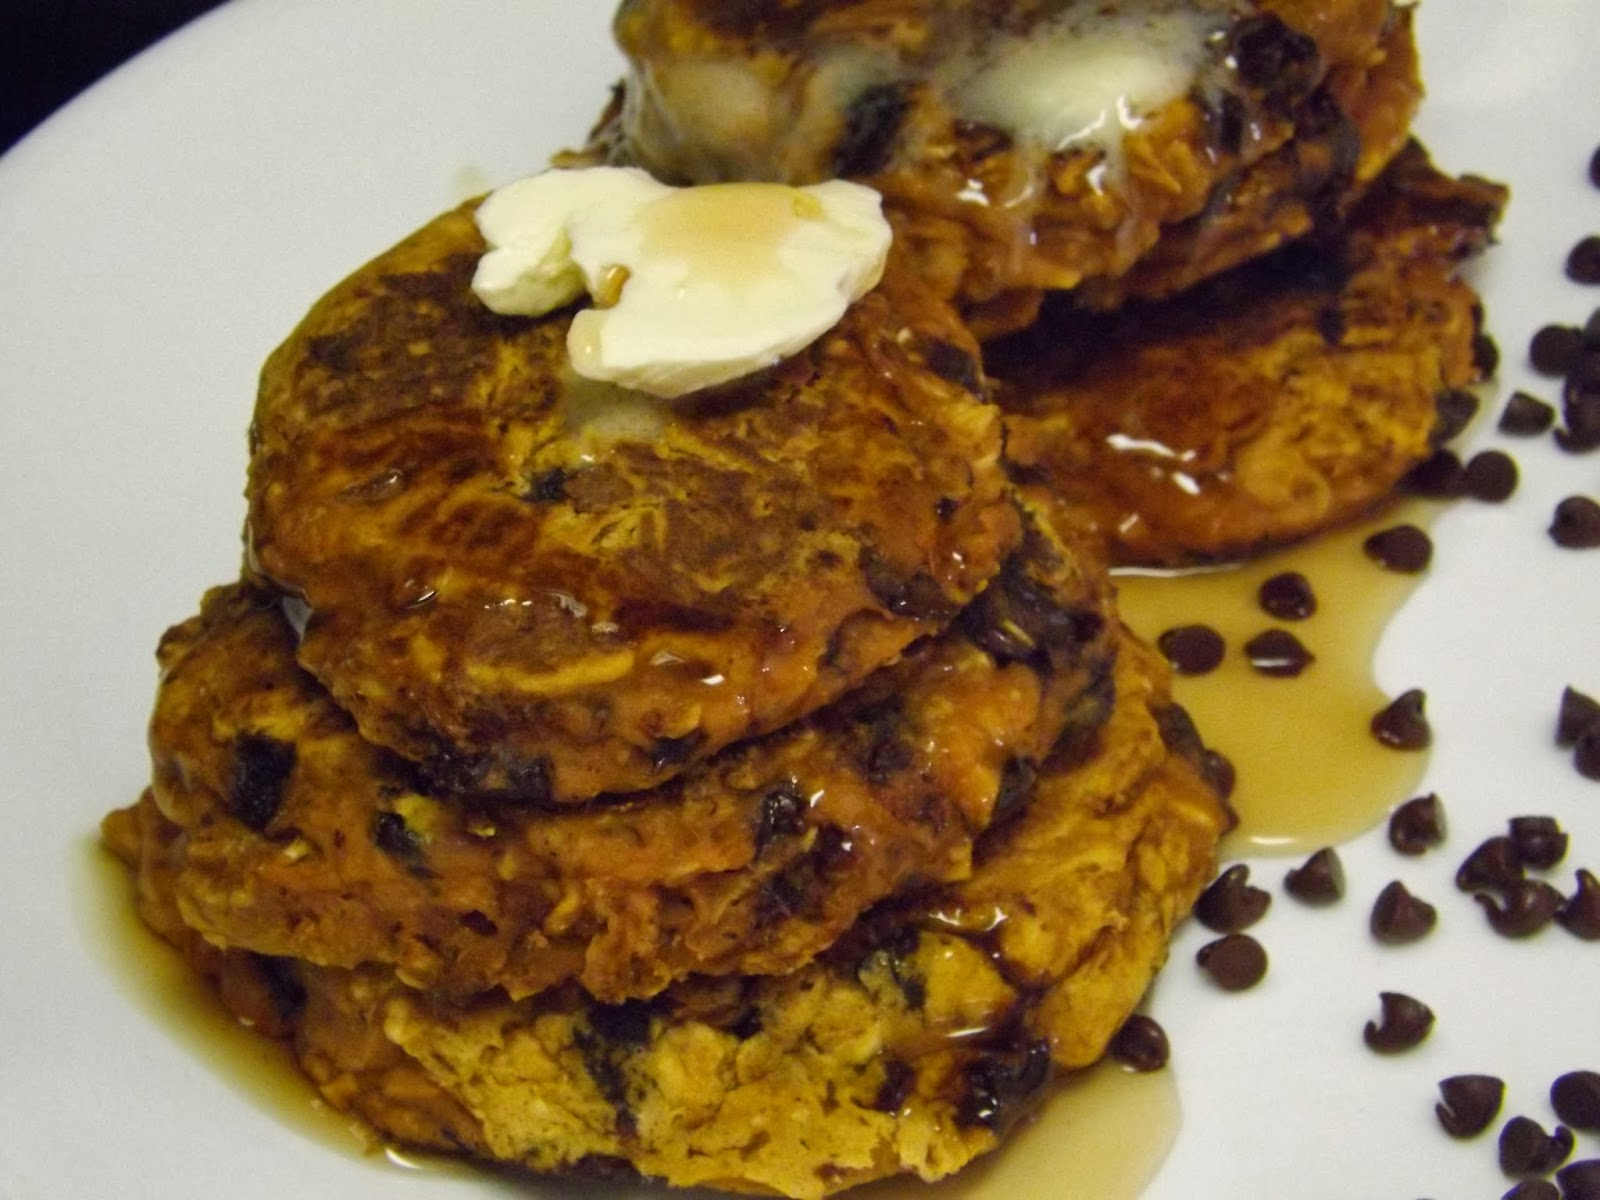 zucchini bread pancakes and carrot cake pancakes were also delicious